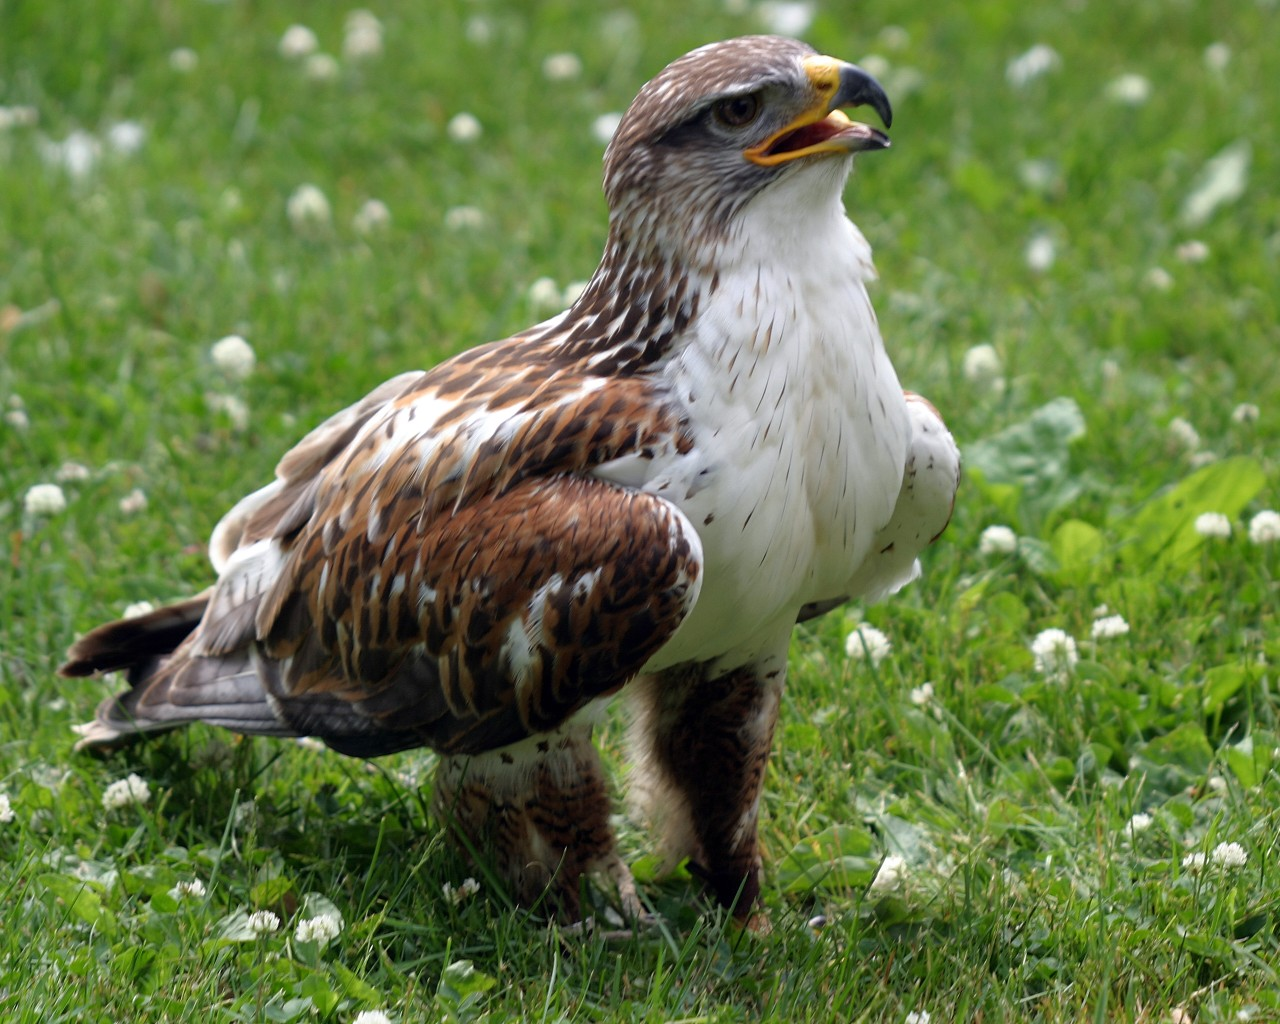 http://3.bp.blogspot.com/-f7MpqG9jWf8/Tka_PIwjGgI/AAAAAAAACGY/-EfVCVWWZ_g/s1600/Hawk-on-grass-pictures-birds-wallpapers.jpg